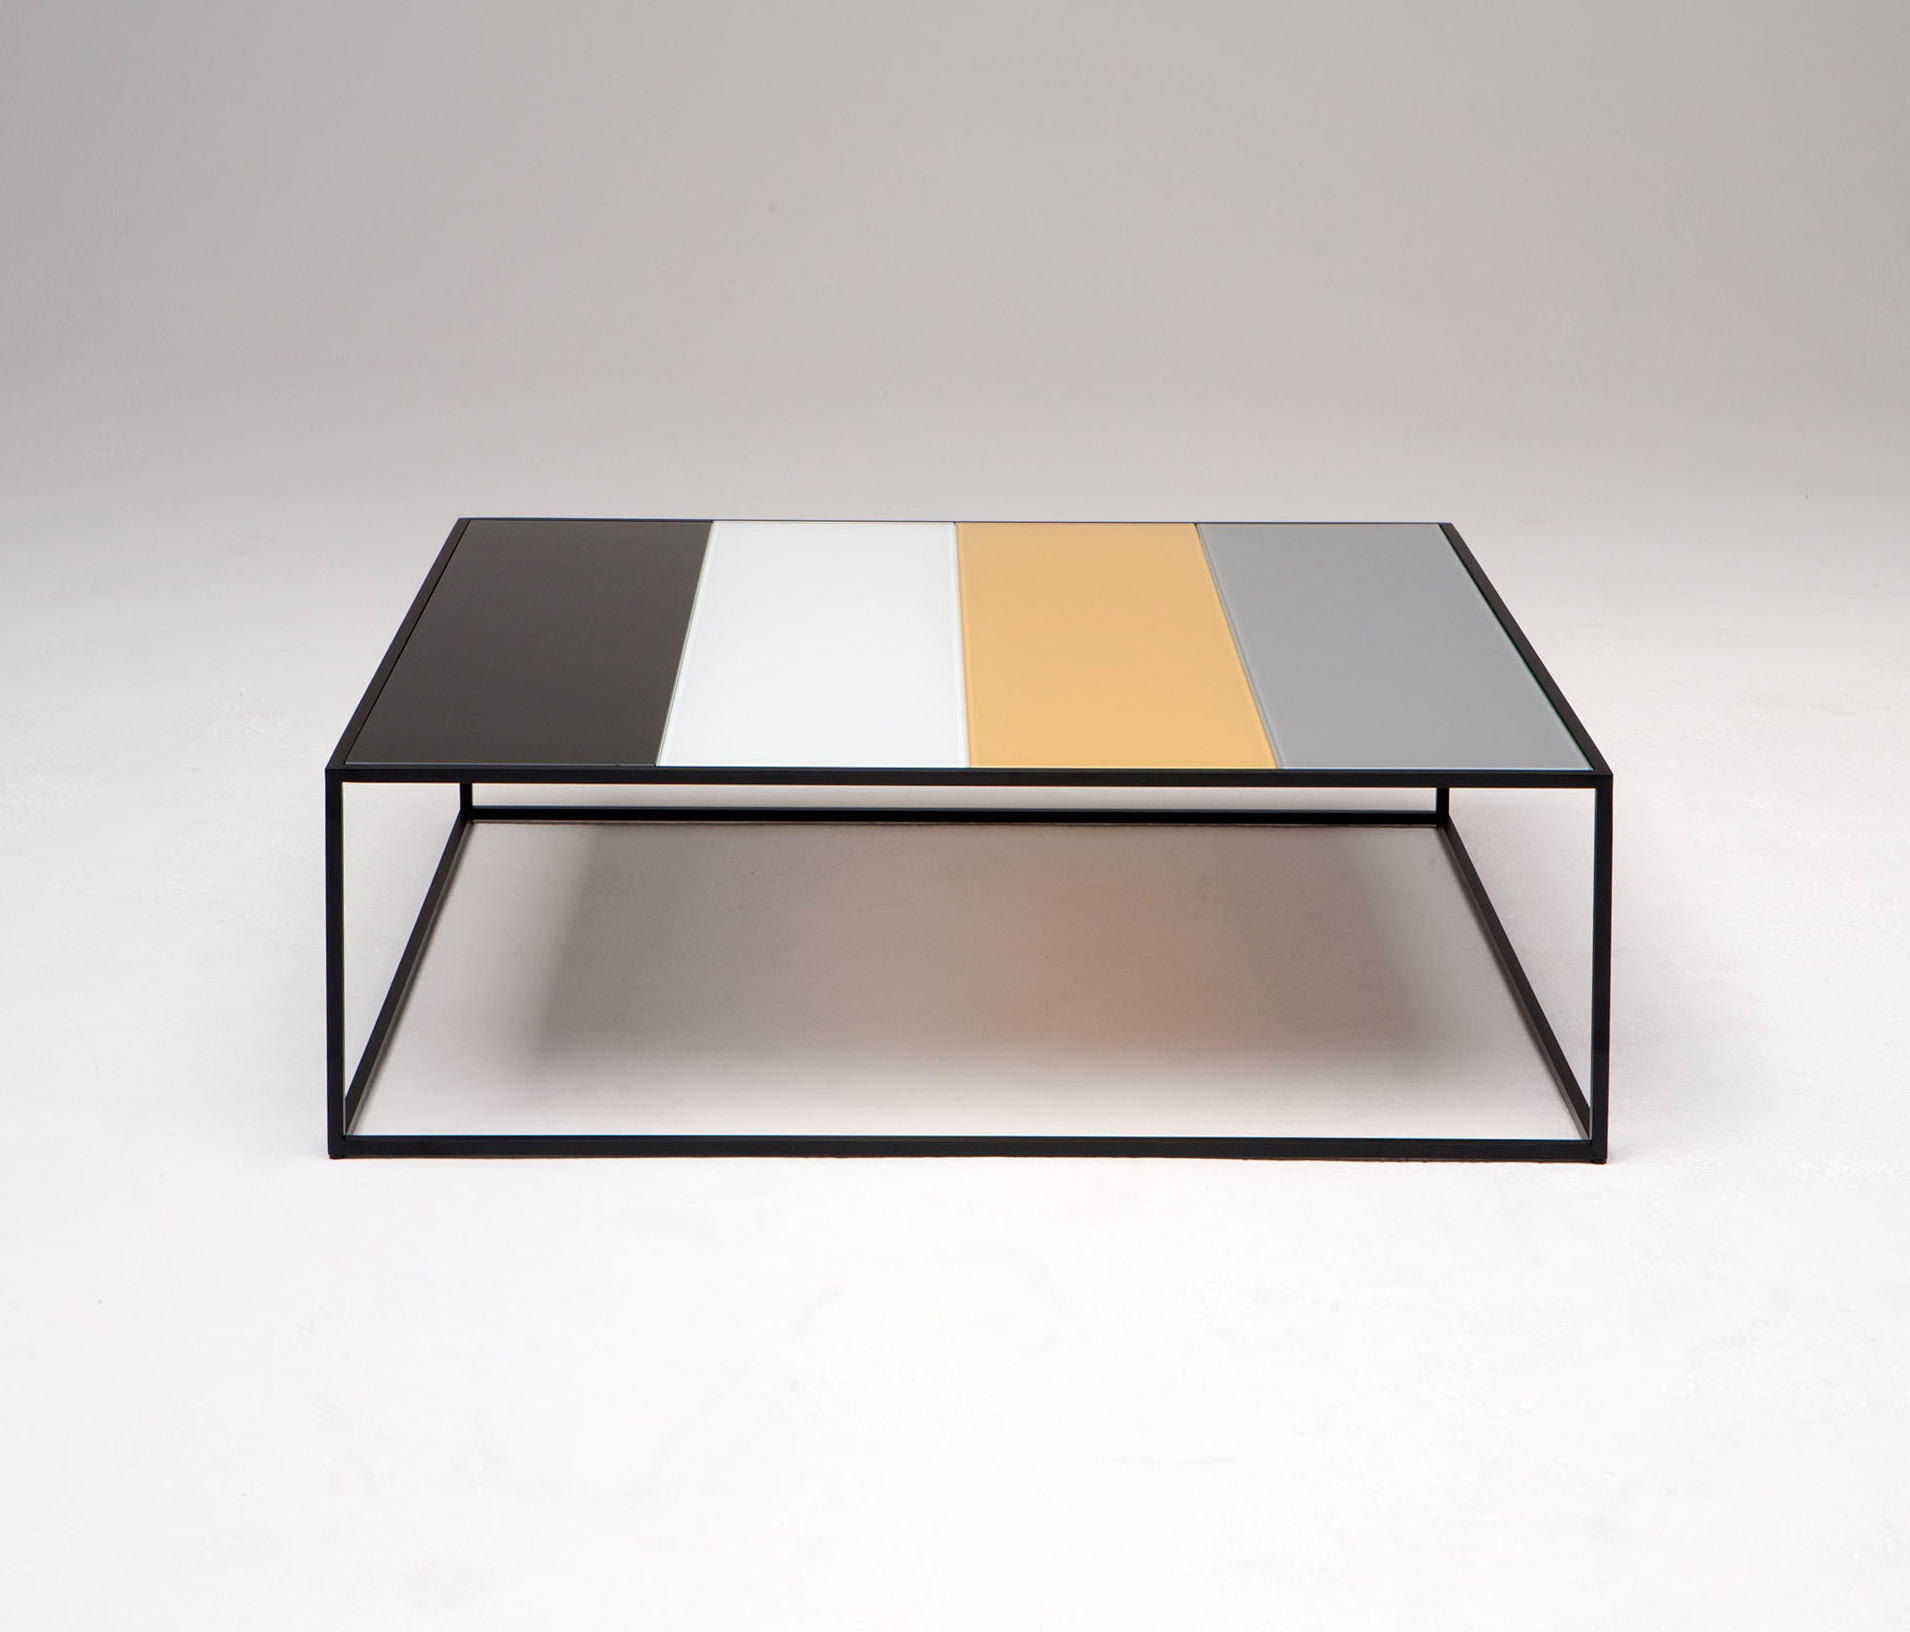 keys coffee table  coffee tables from phase design  architonic - keys coffee table by phase design  coffee tables